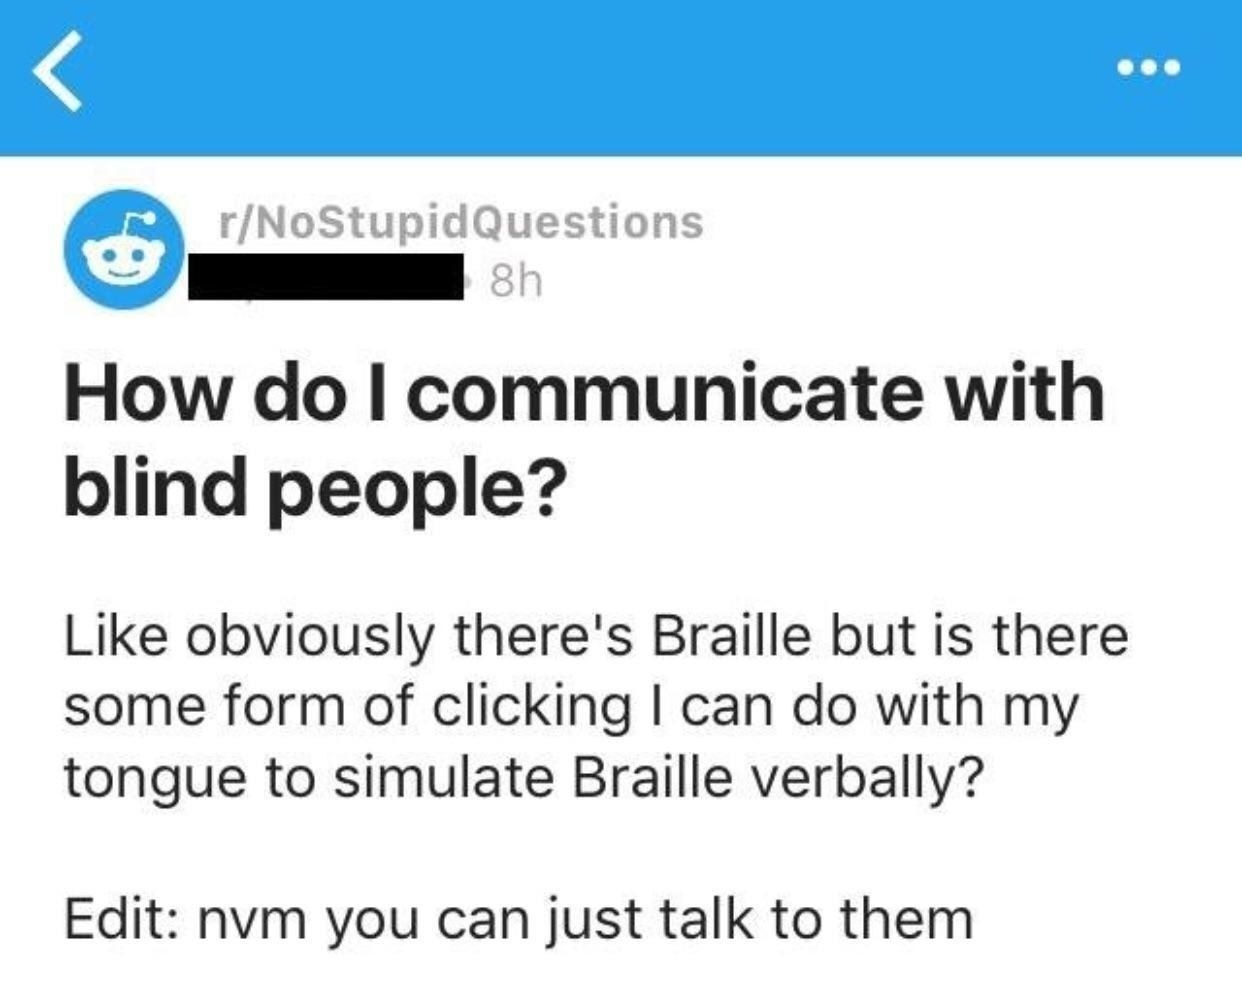 reddit post of someone asking how to communicate with blind people